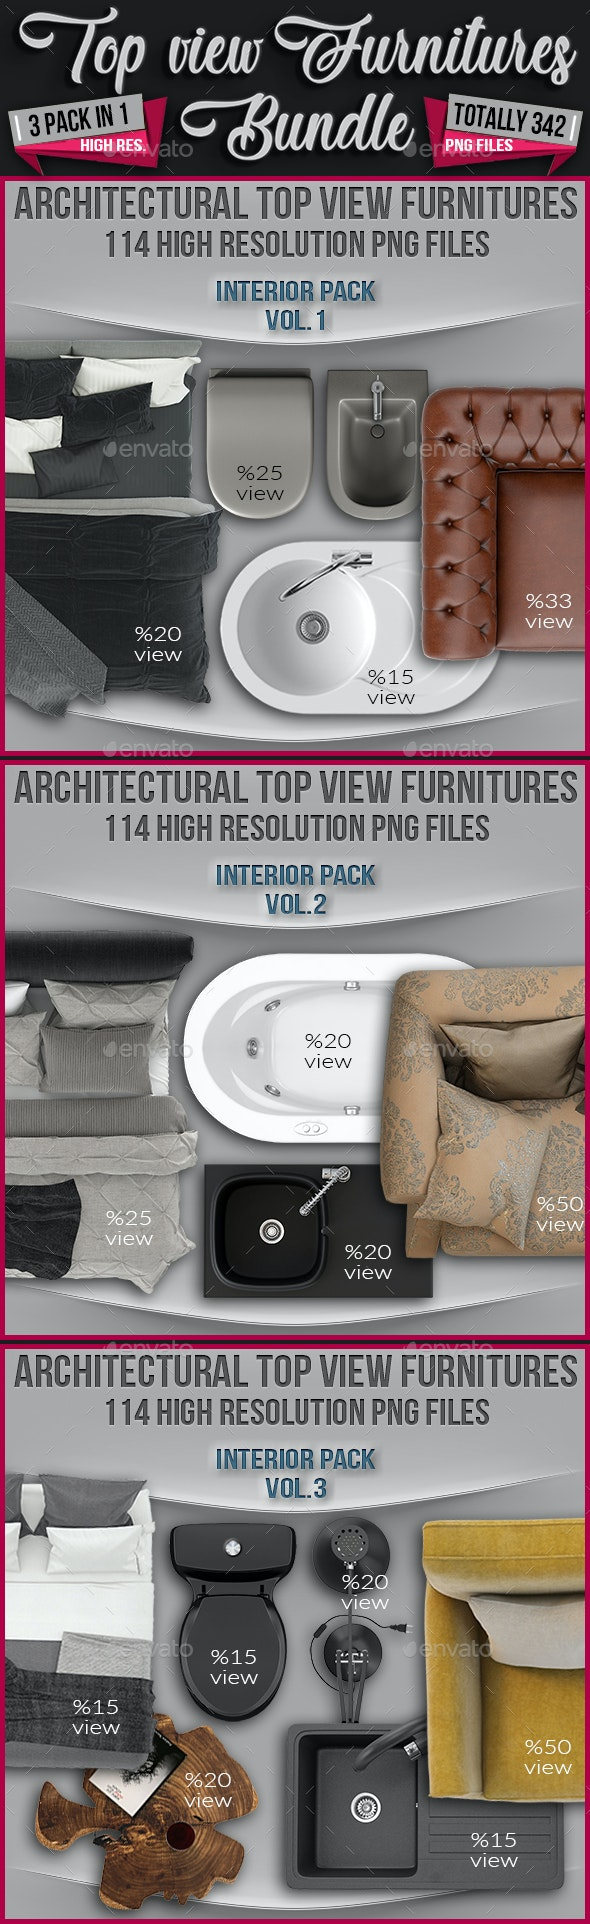 3 in 1 Top View Furnitures Bundle - Totally 342 Png Files - Miscellaneous Product Mock-Ups